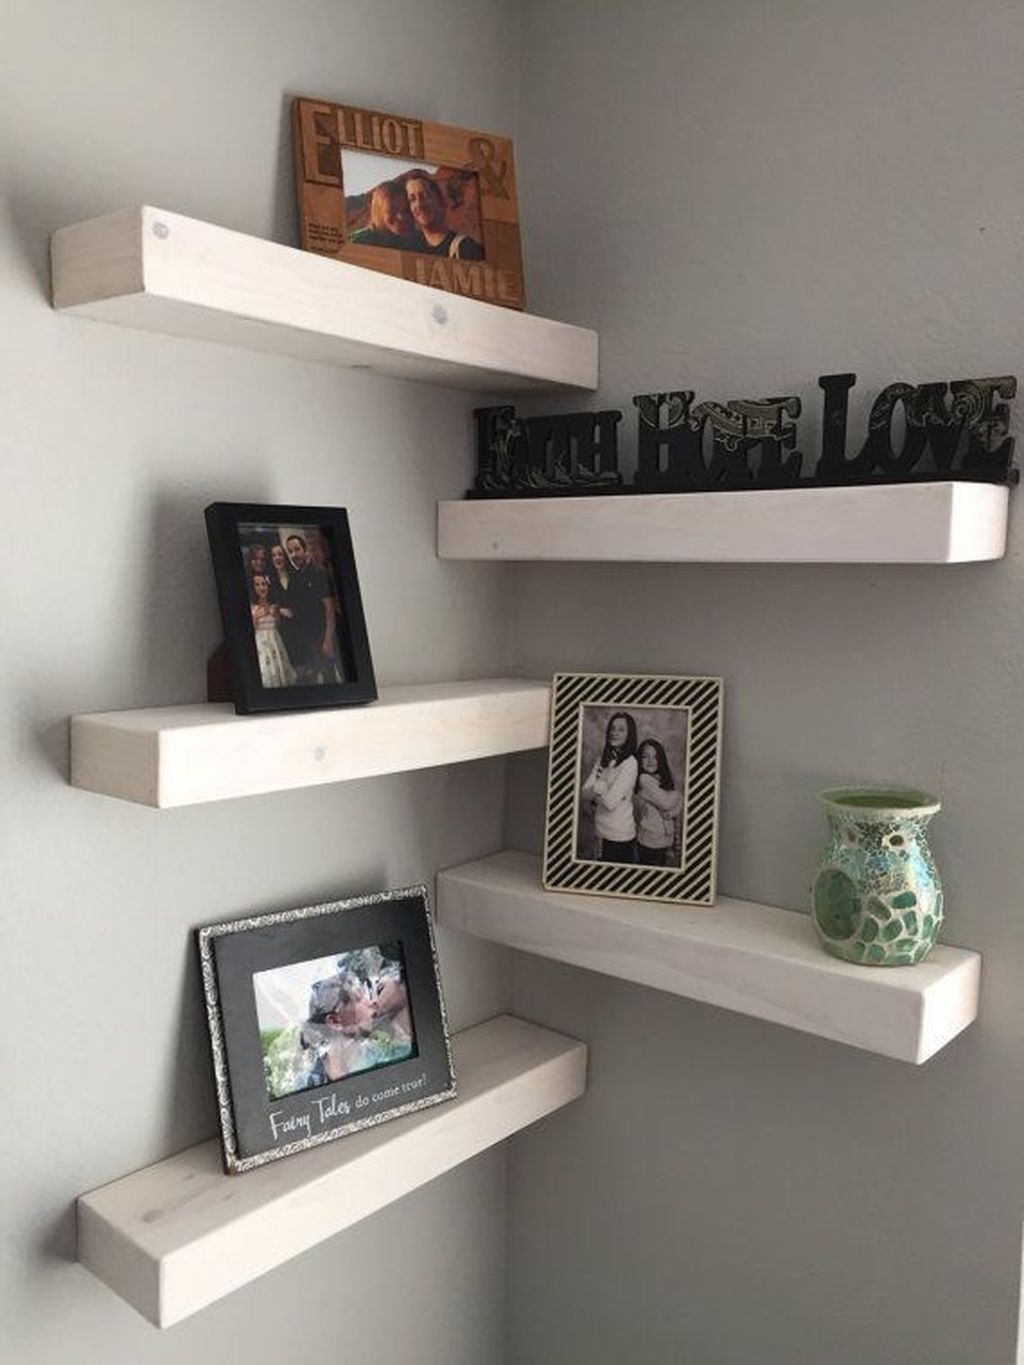 37 Captivating Diy Floating Shelves Living Room Decorating Ideas Wall Shelves Living Room Floating Shelves Living Room Living Room Shelves